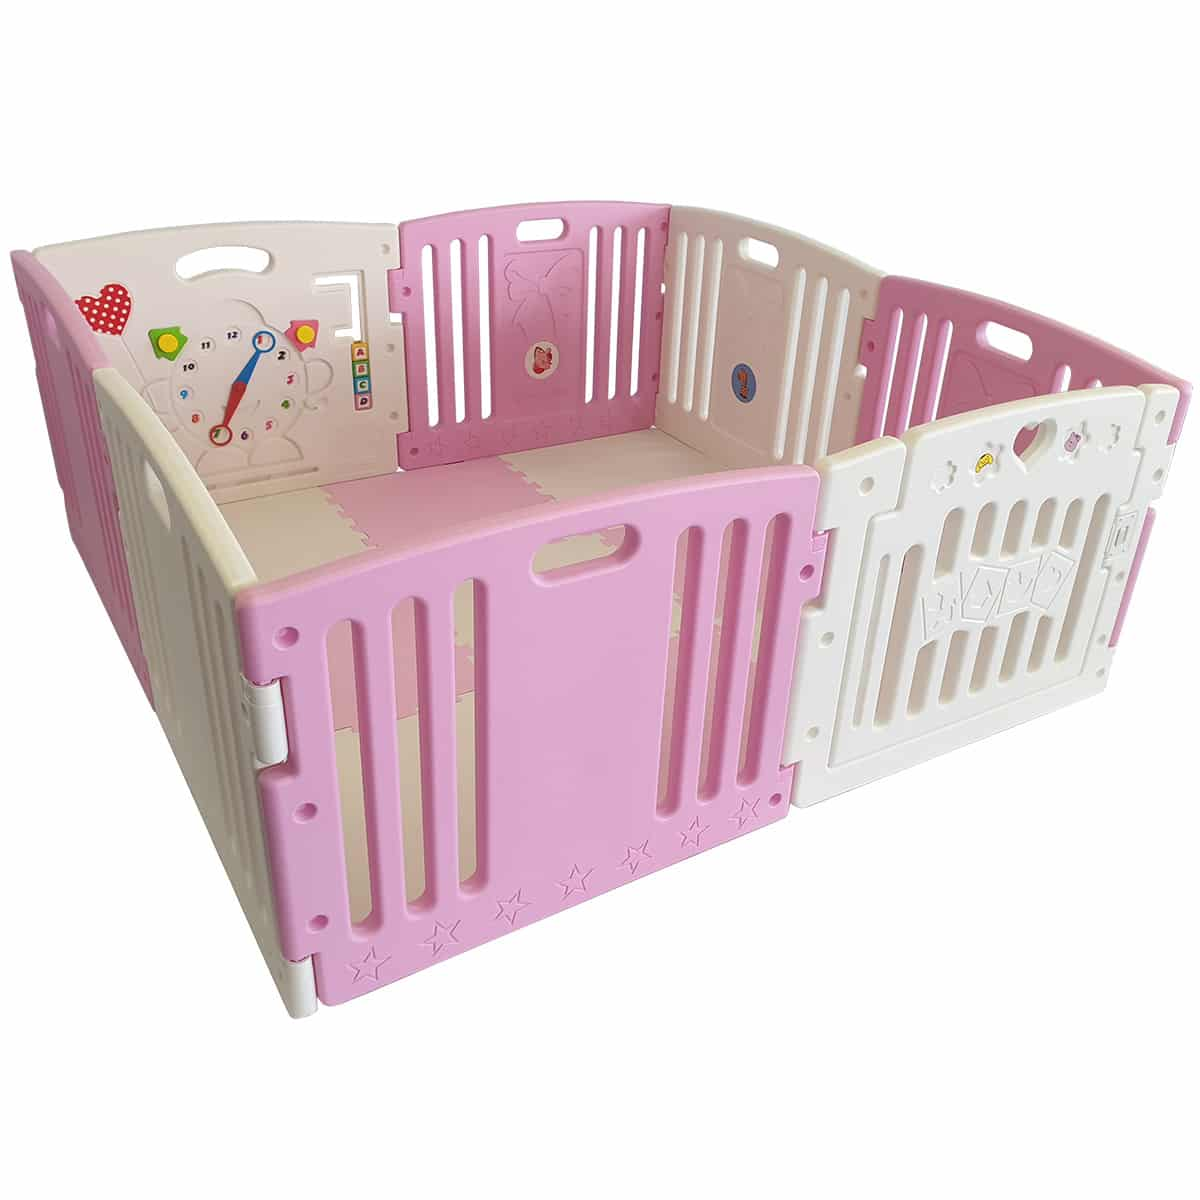 Venture All Stars DUO baby playpen in pink